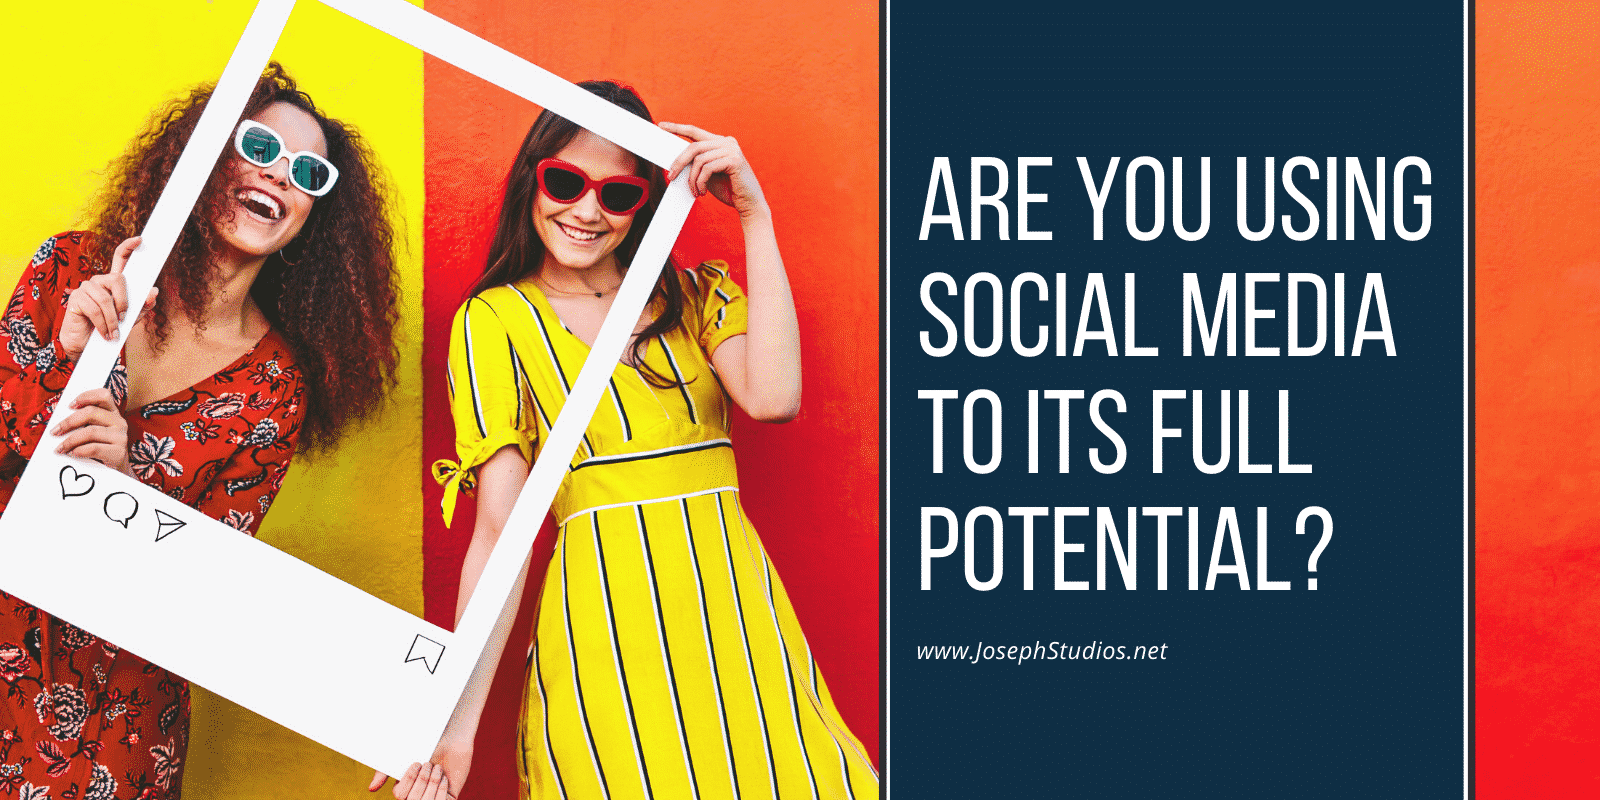 Are You Using Social Media To Its Full Potential?